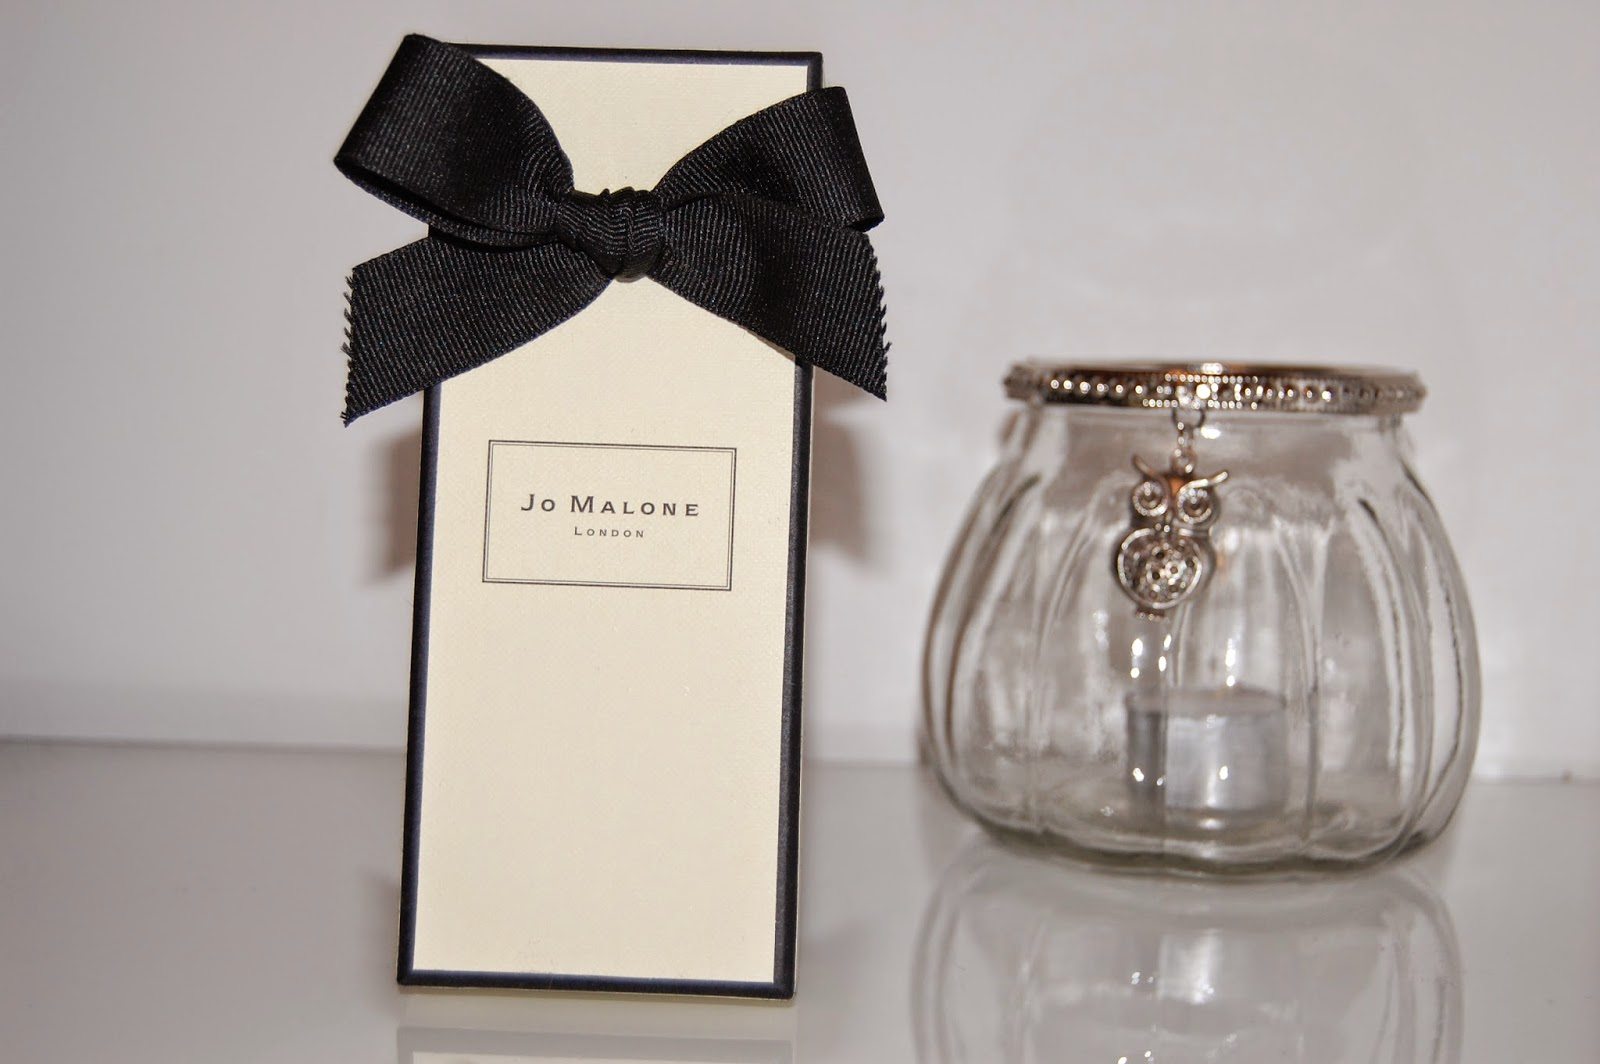 Beauty Box: Jo Malone White Jasmine and Mint Cologne Review